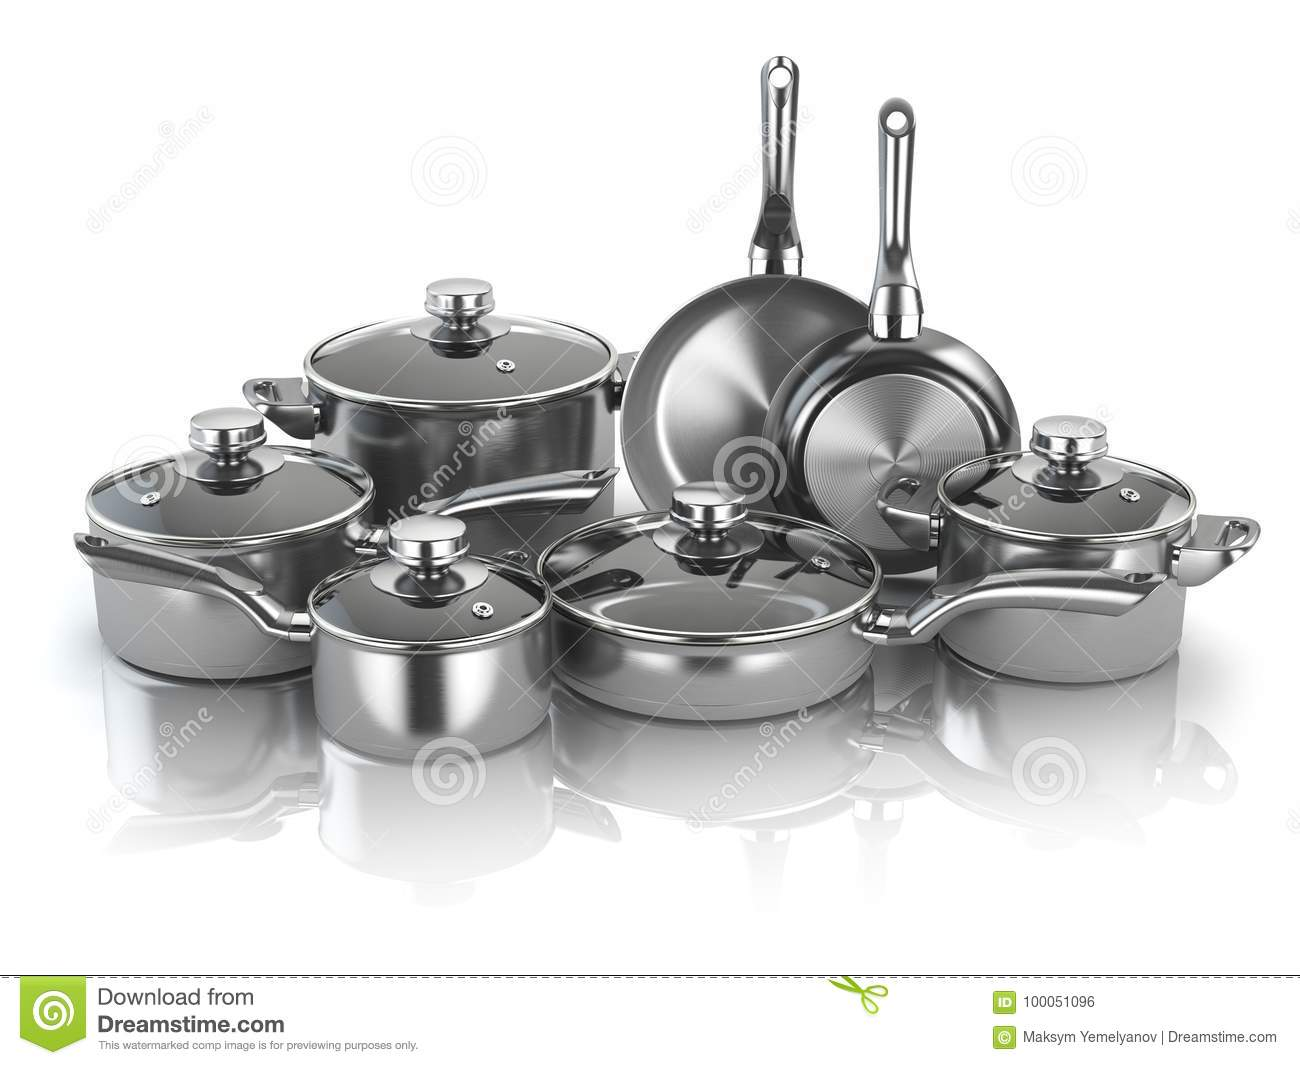 Pots And Pans  Set Of Cooking Stainless Steel Kitchen